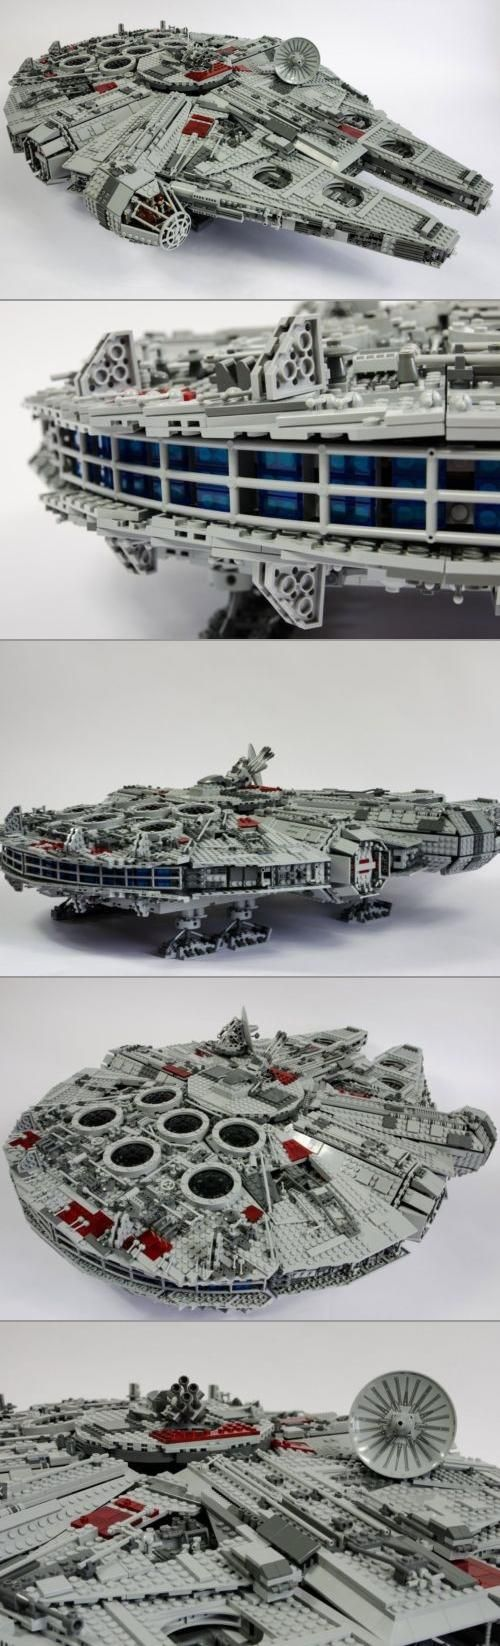 Did you know that when this Star Wars UCS Millennium Falcon was created (2007), it was the largest set ever produced by LEGO? | #StarWars